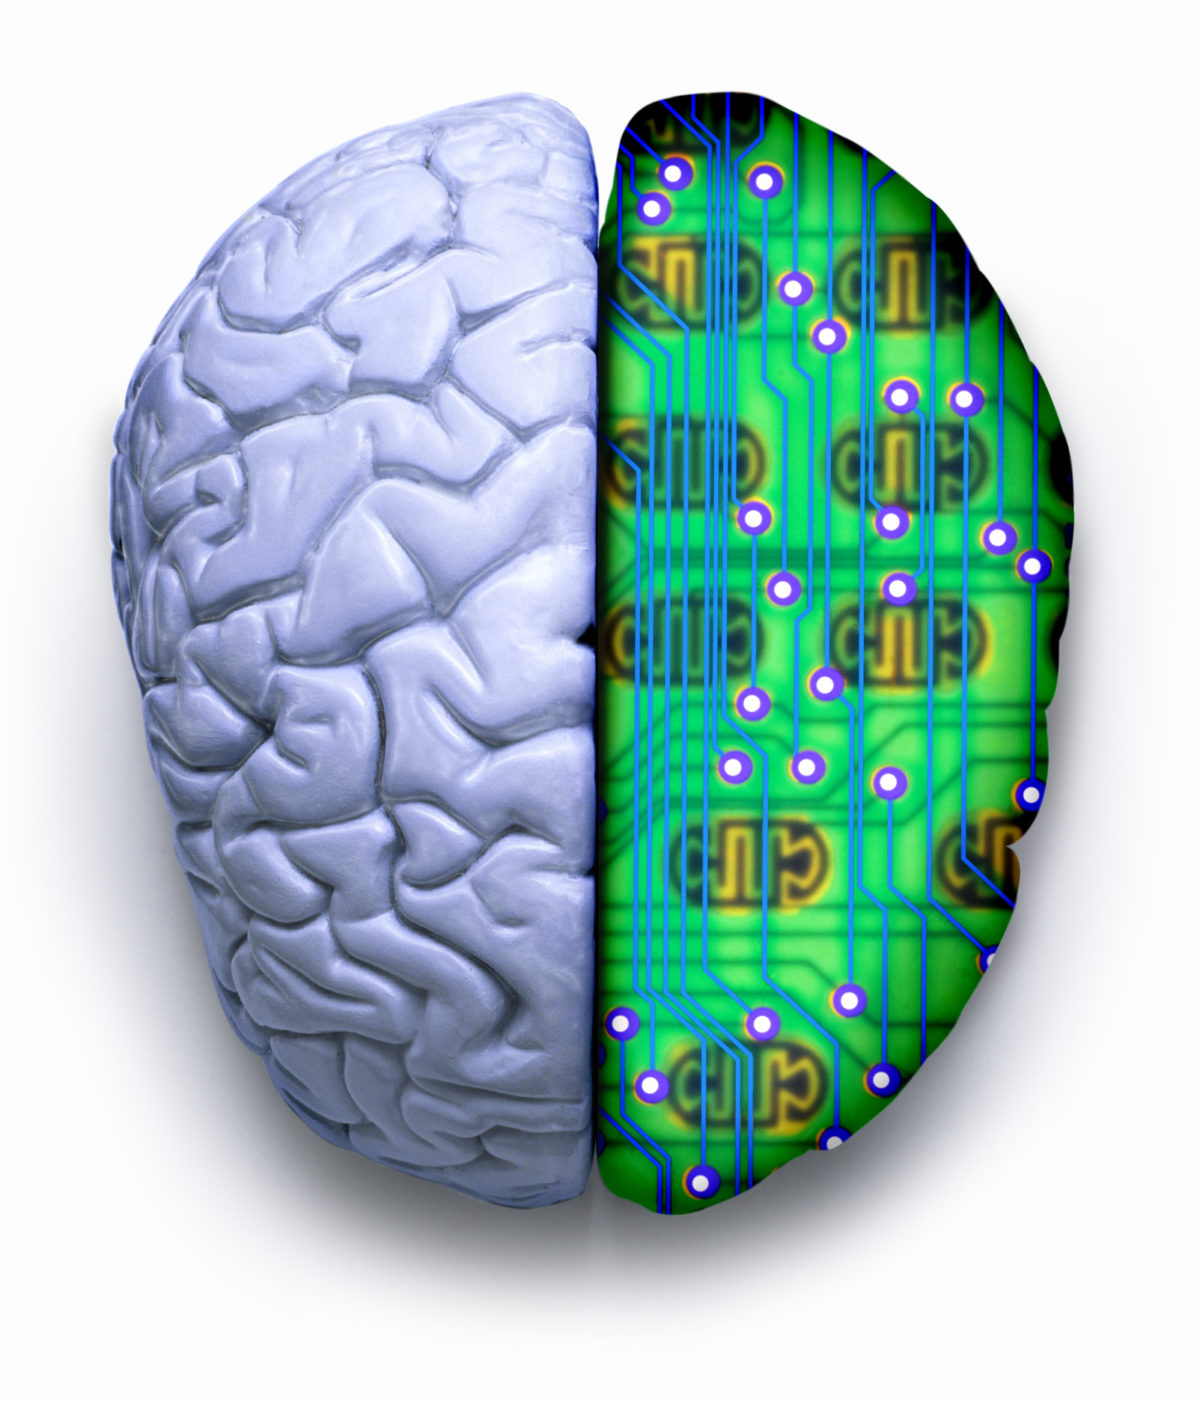 © Dave Bredeson | Dreamstime.com - Computer Science Brain Technology